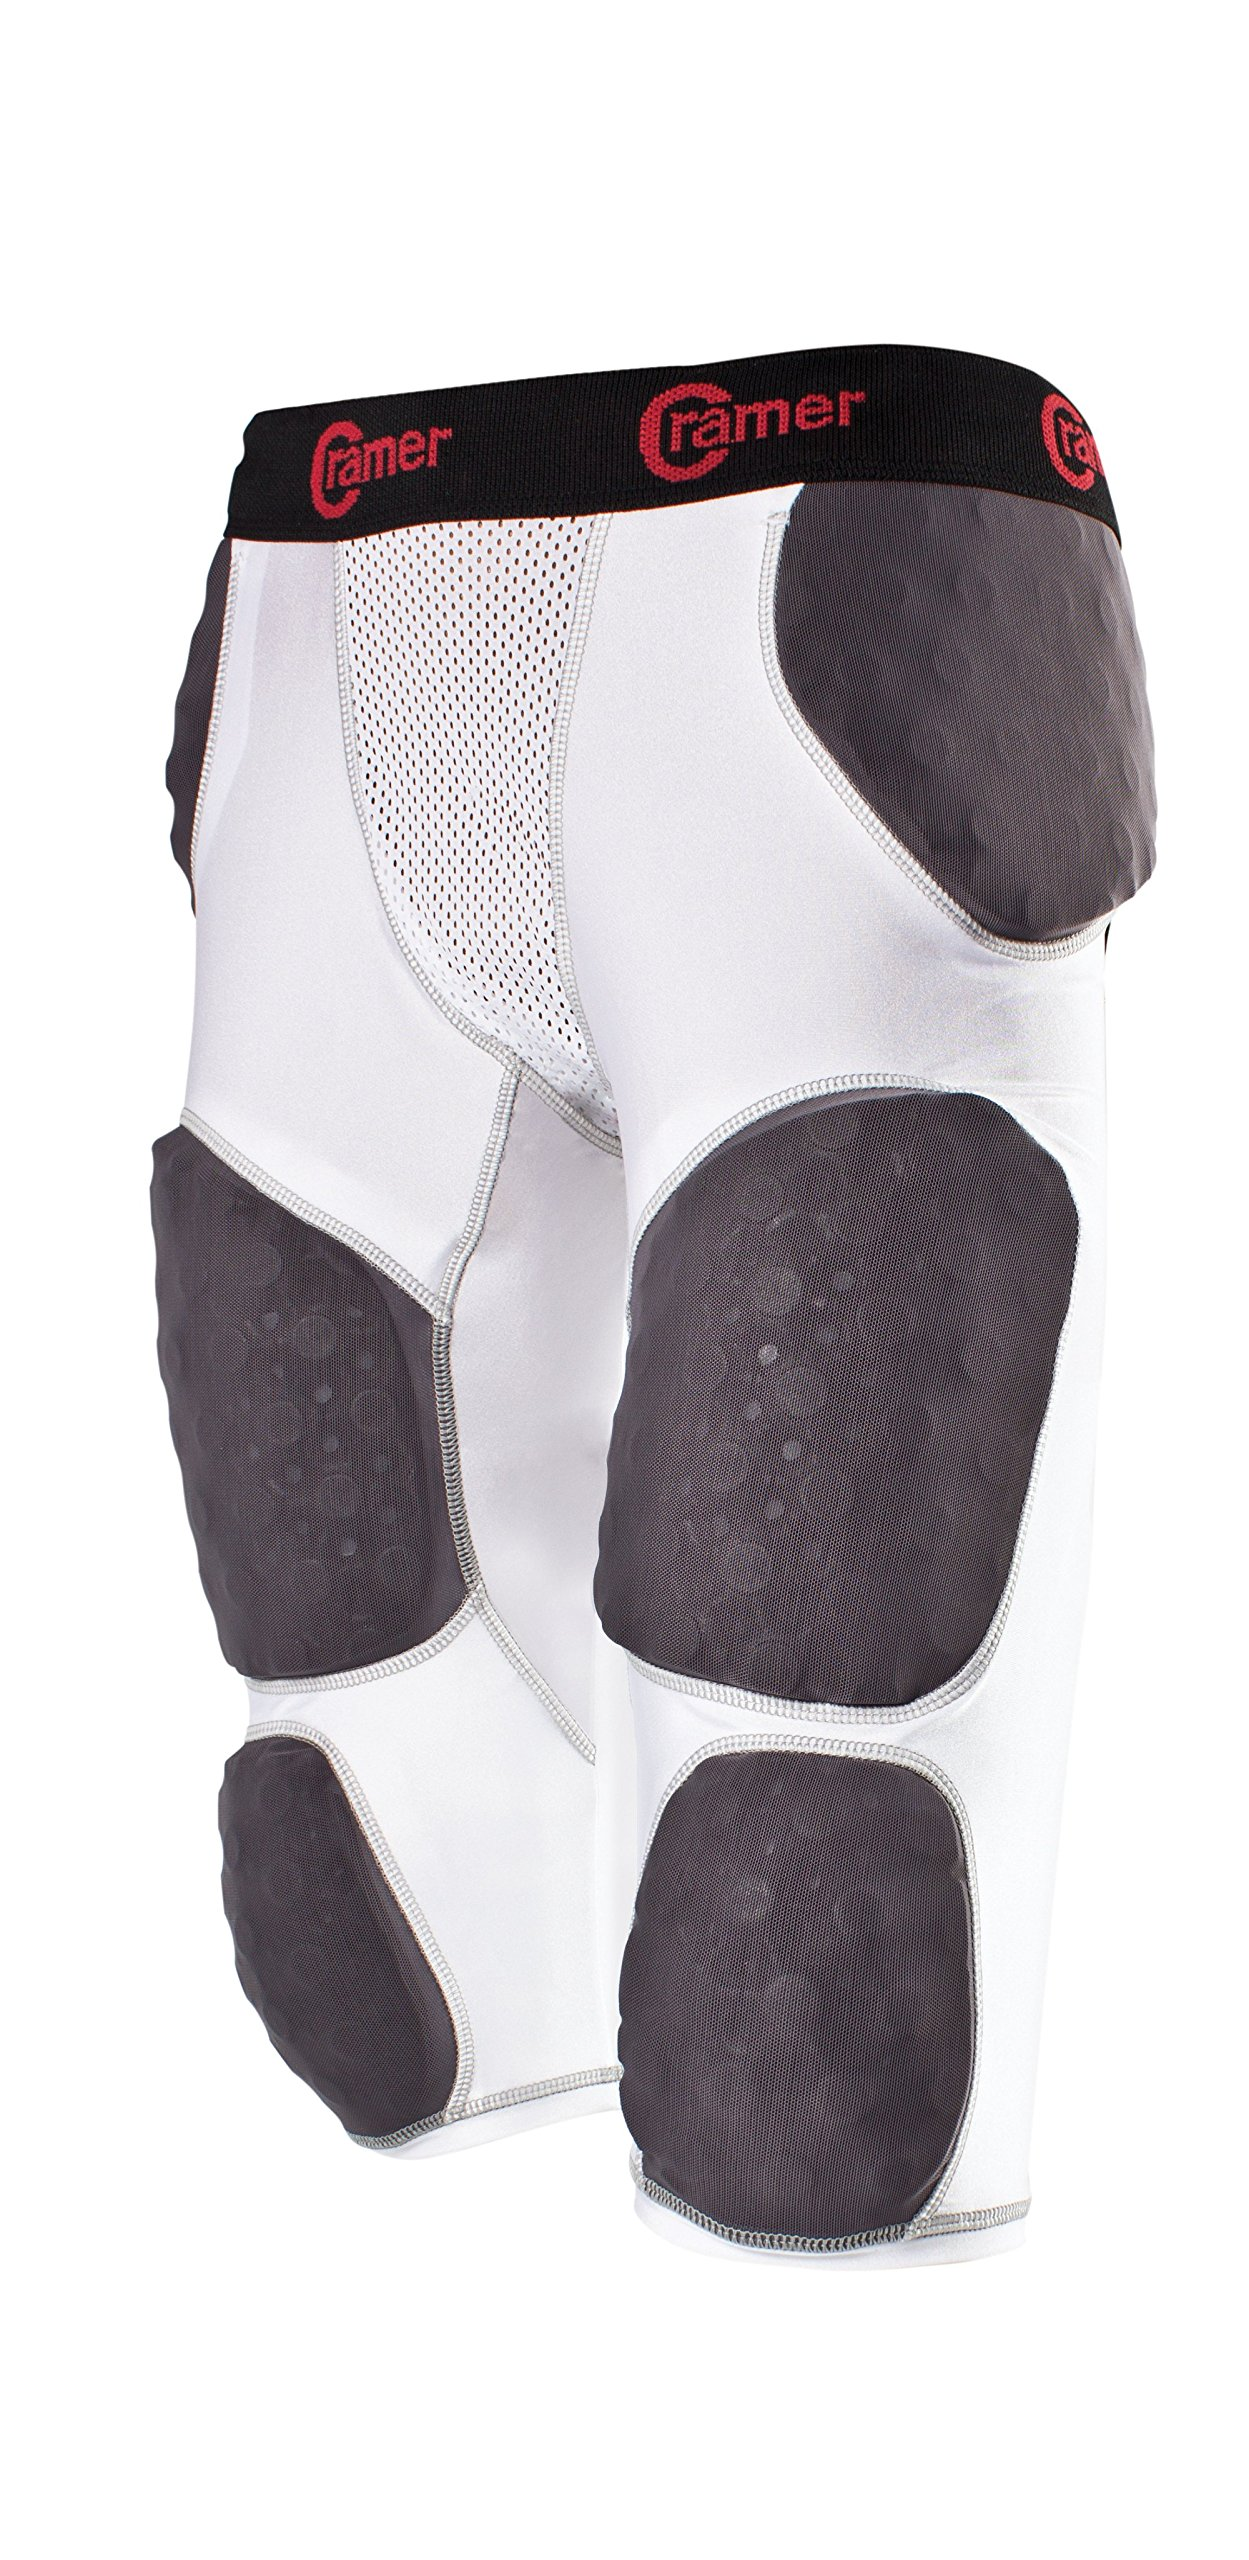 Cramer Lightning 7 Pad Football Girdle With Integrated Hip, Tailbone and Thigh Pads, Anti-Bacterial and Moisture-Wicking Fabric, Great Protection Without Impeding Athletic Performance, White, Medium by Cramer (Image #1)